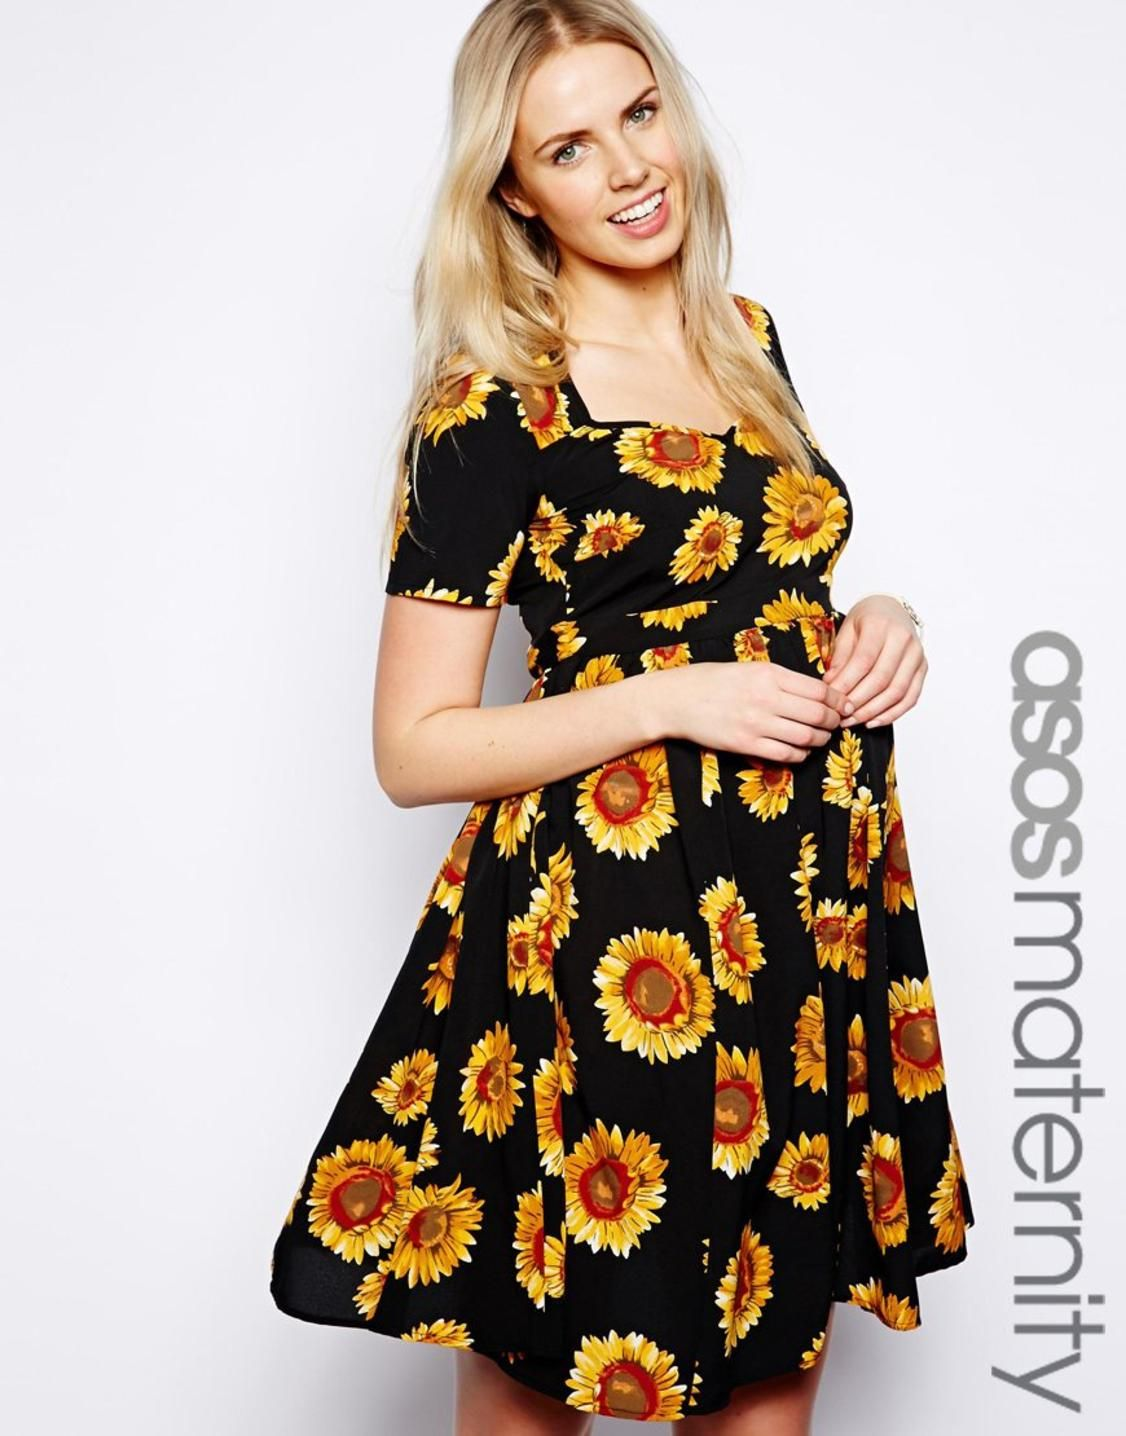 Asos maternity exclusive skater dress in sunflower print http maternity dress exclusive to the asos maternity collectiondesigned to fit through all stages of pregnancy made from a woven poly fabricsweetheart neckli ombrellifo Image collections